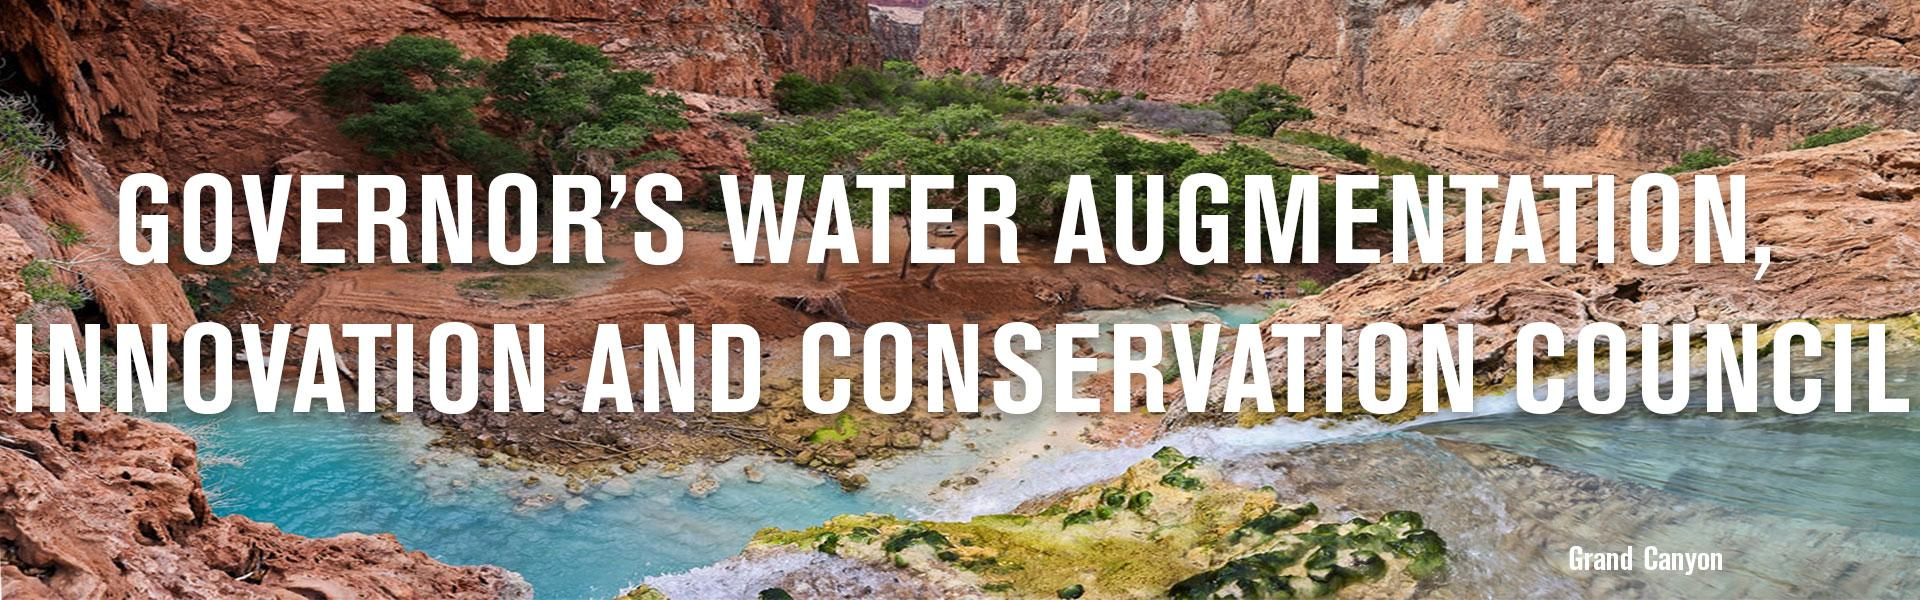 Governor's Water Augmentation, Innovation and Conservation Council